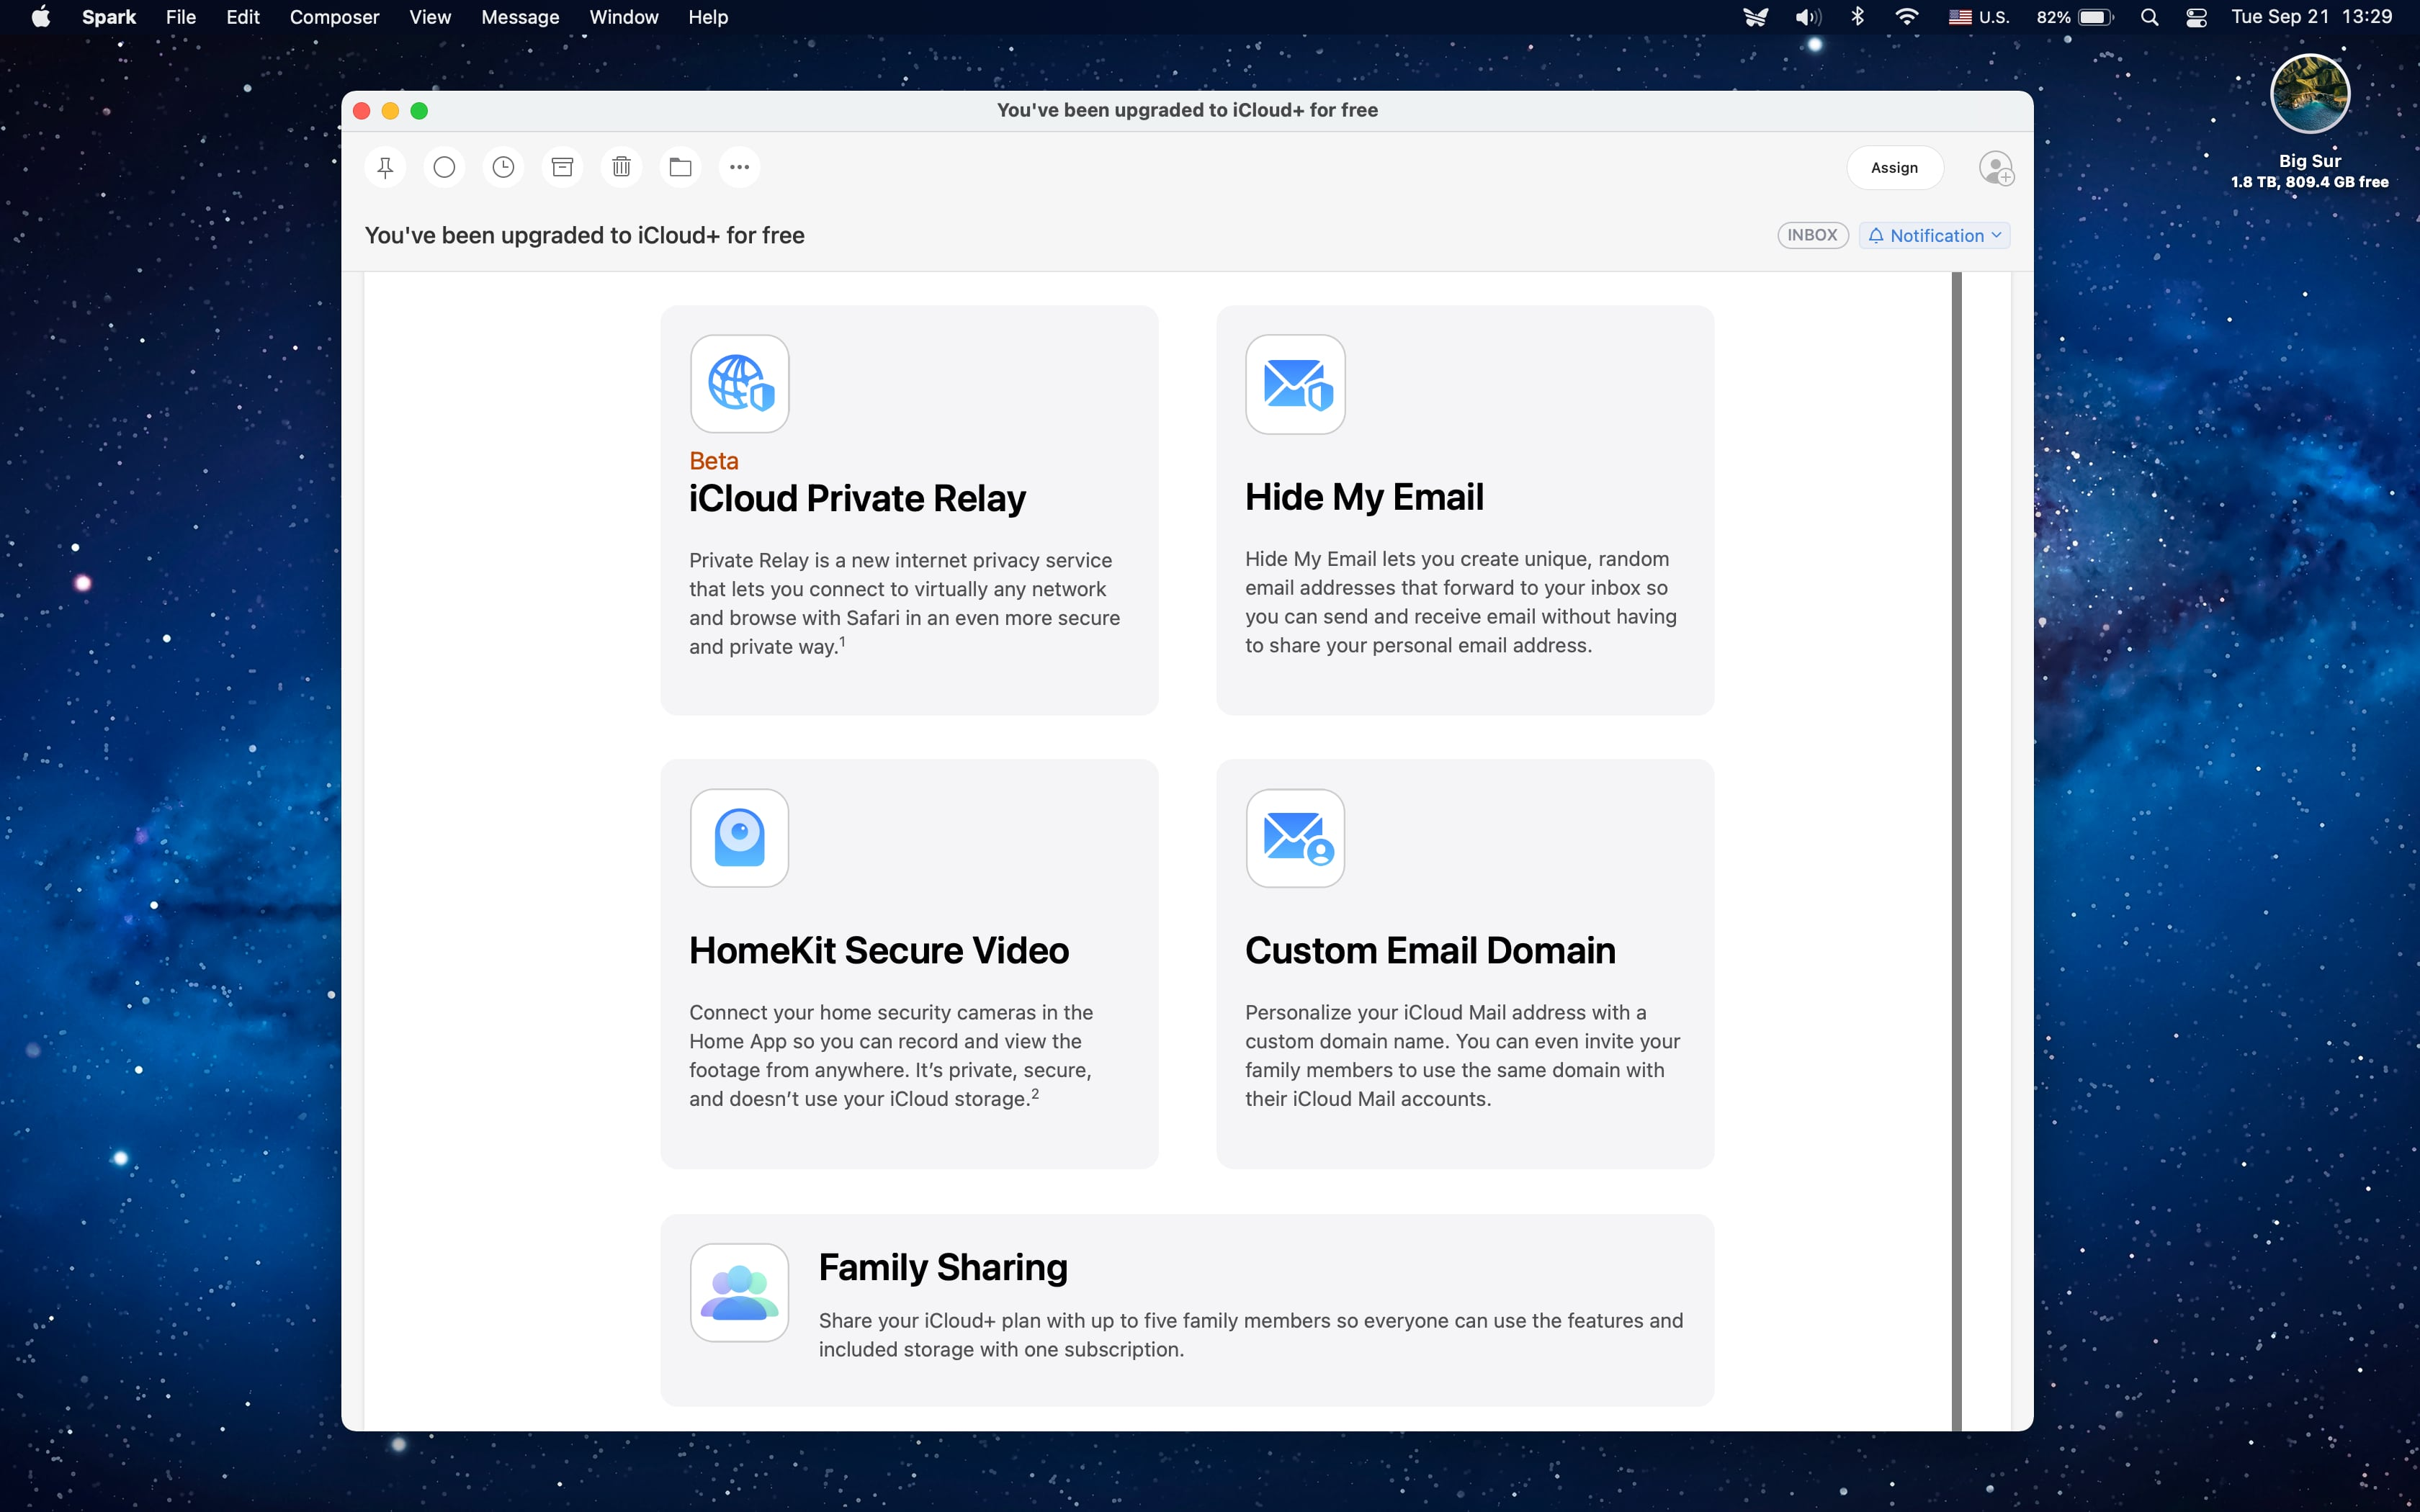 A macOS screenshot showing an Apple Mail message promoting the new Hide My Email and Custom Email Domains features